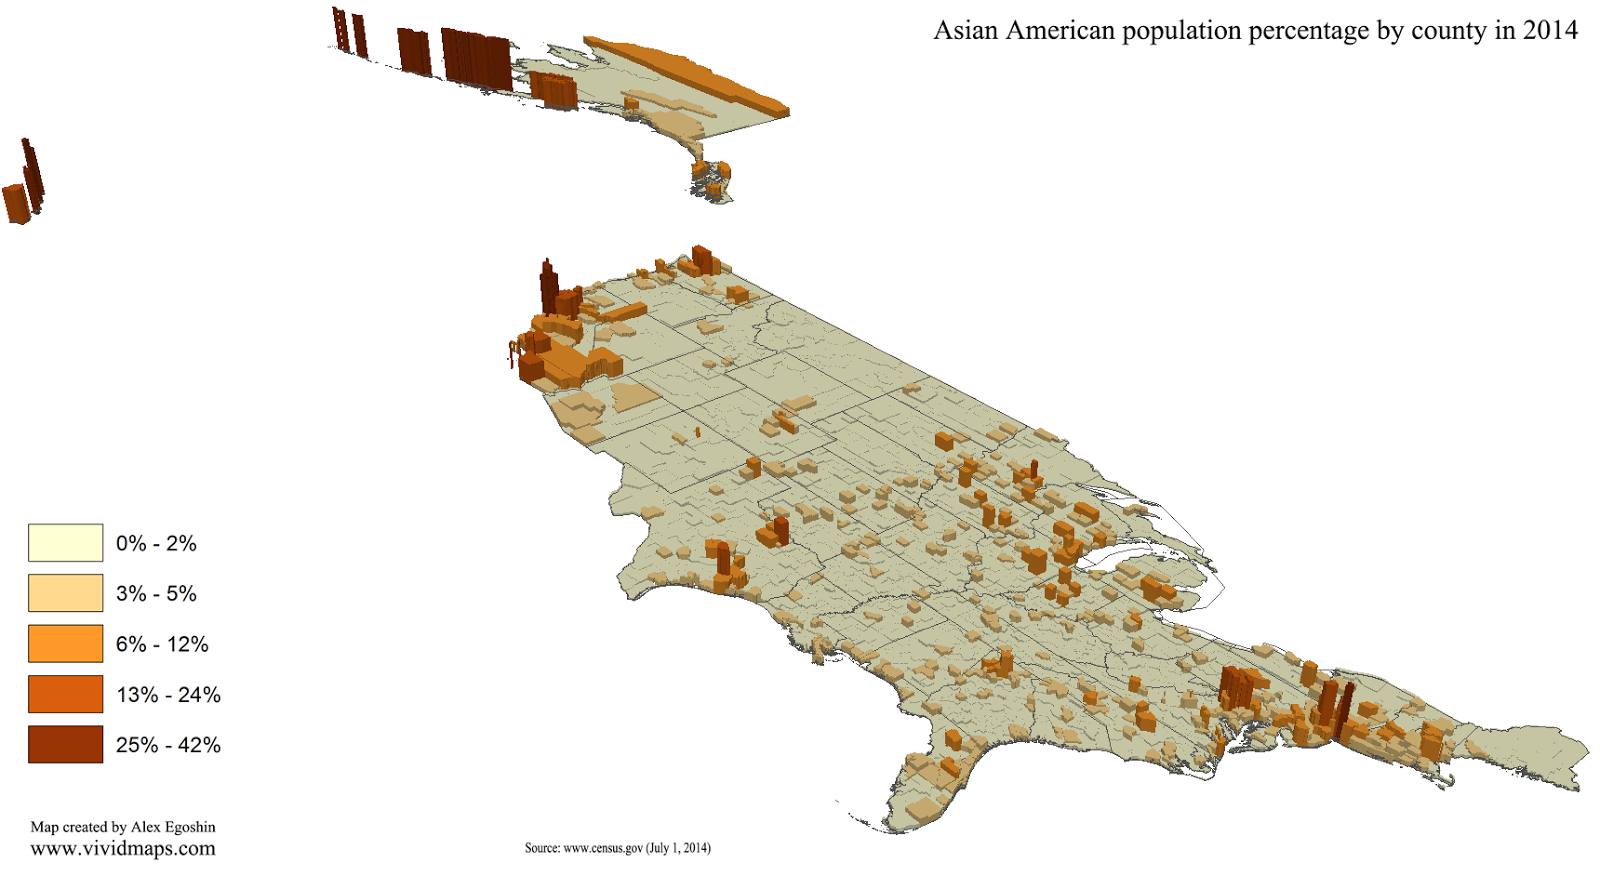 Asian American population percentage by county